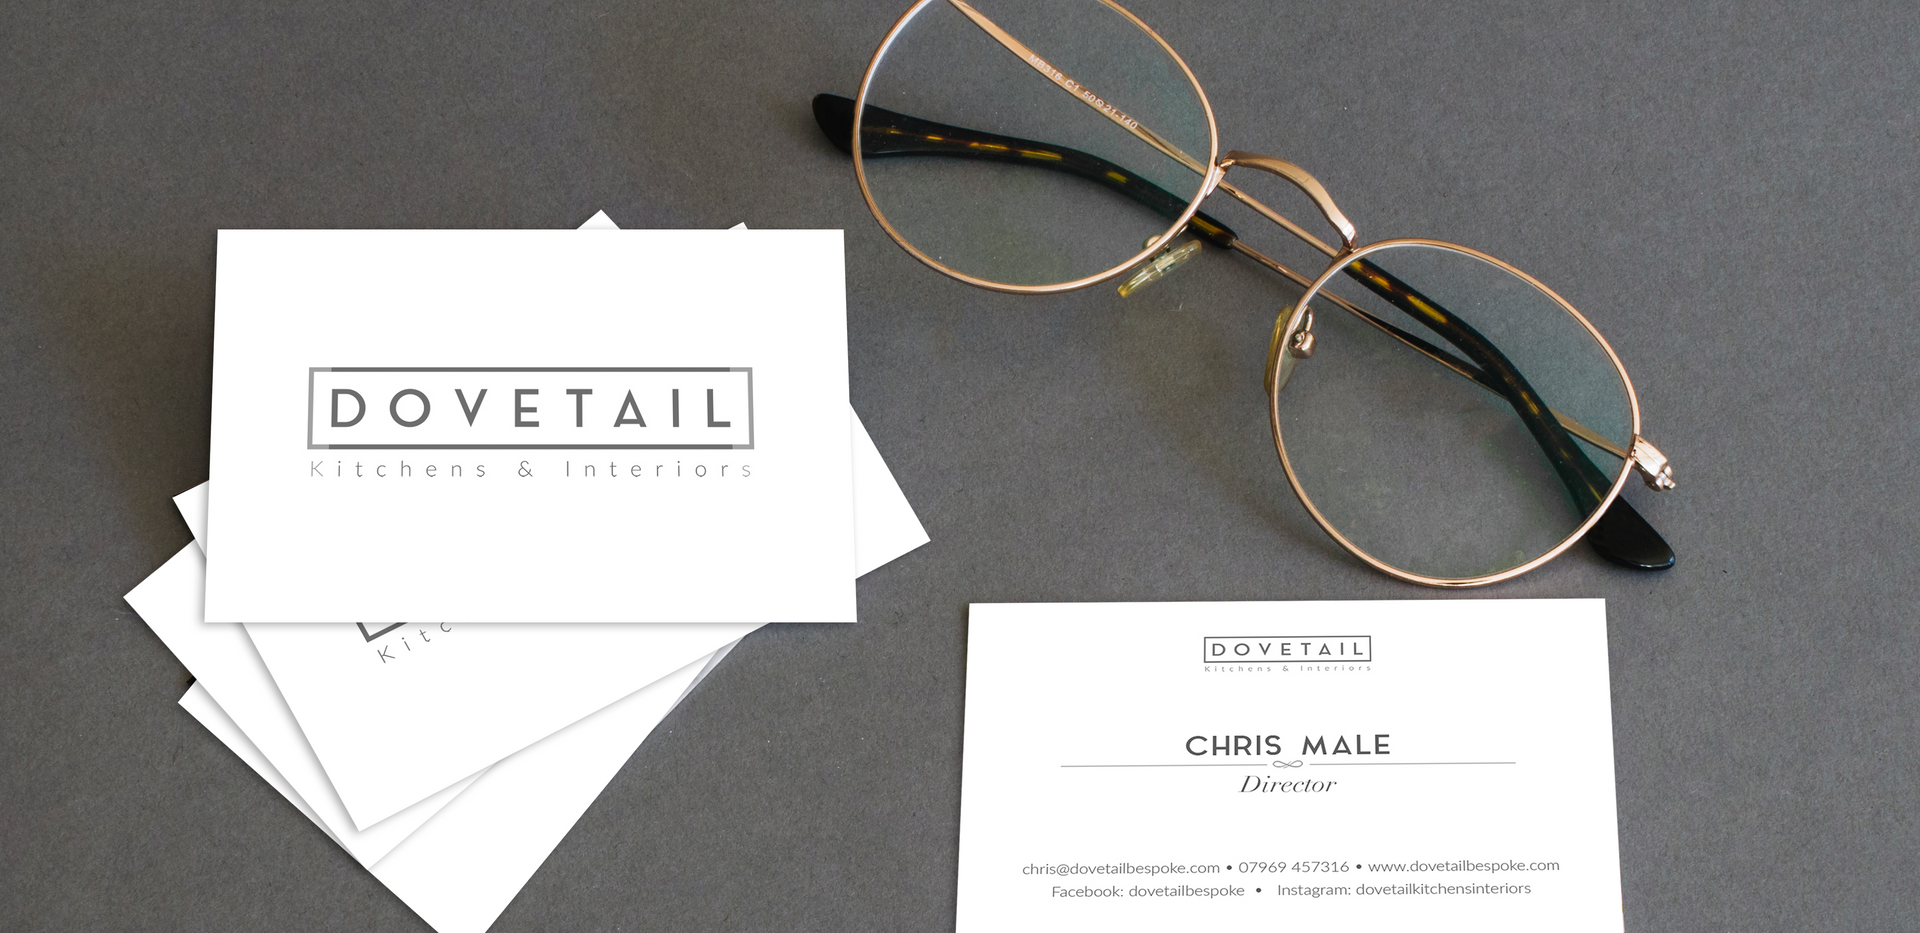 Dovetail Kitchens & Interiors Business Cards